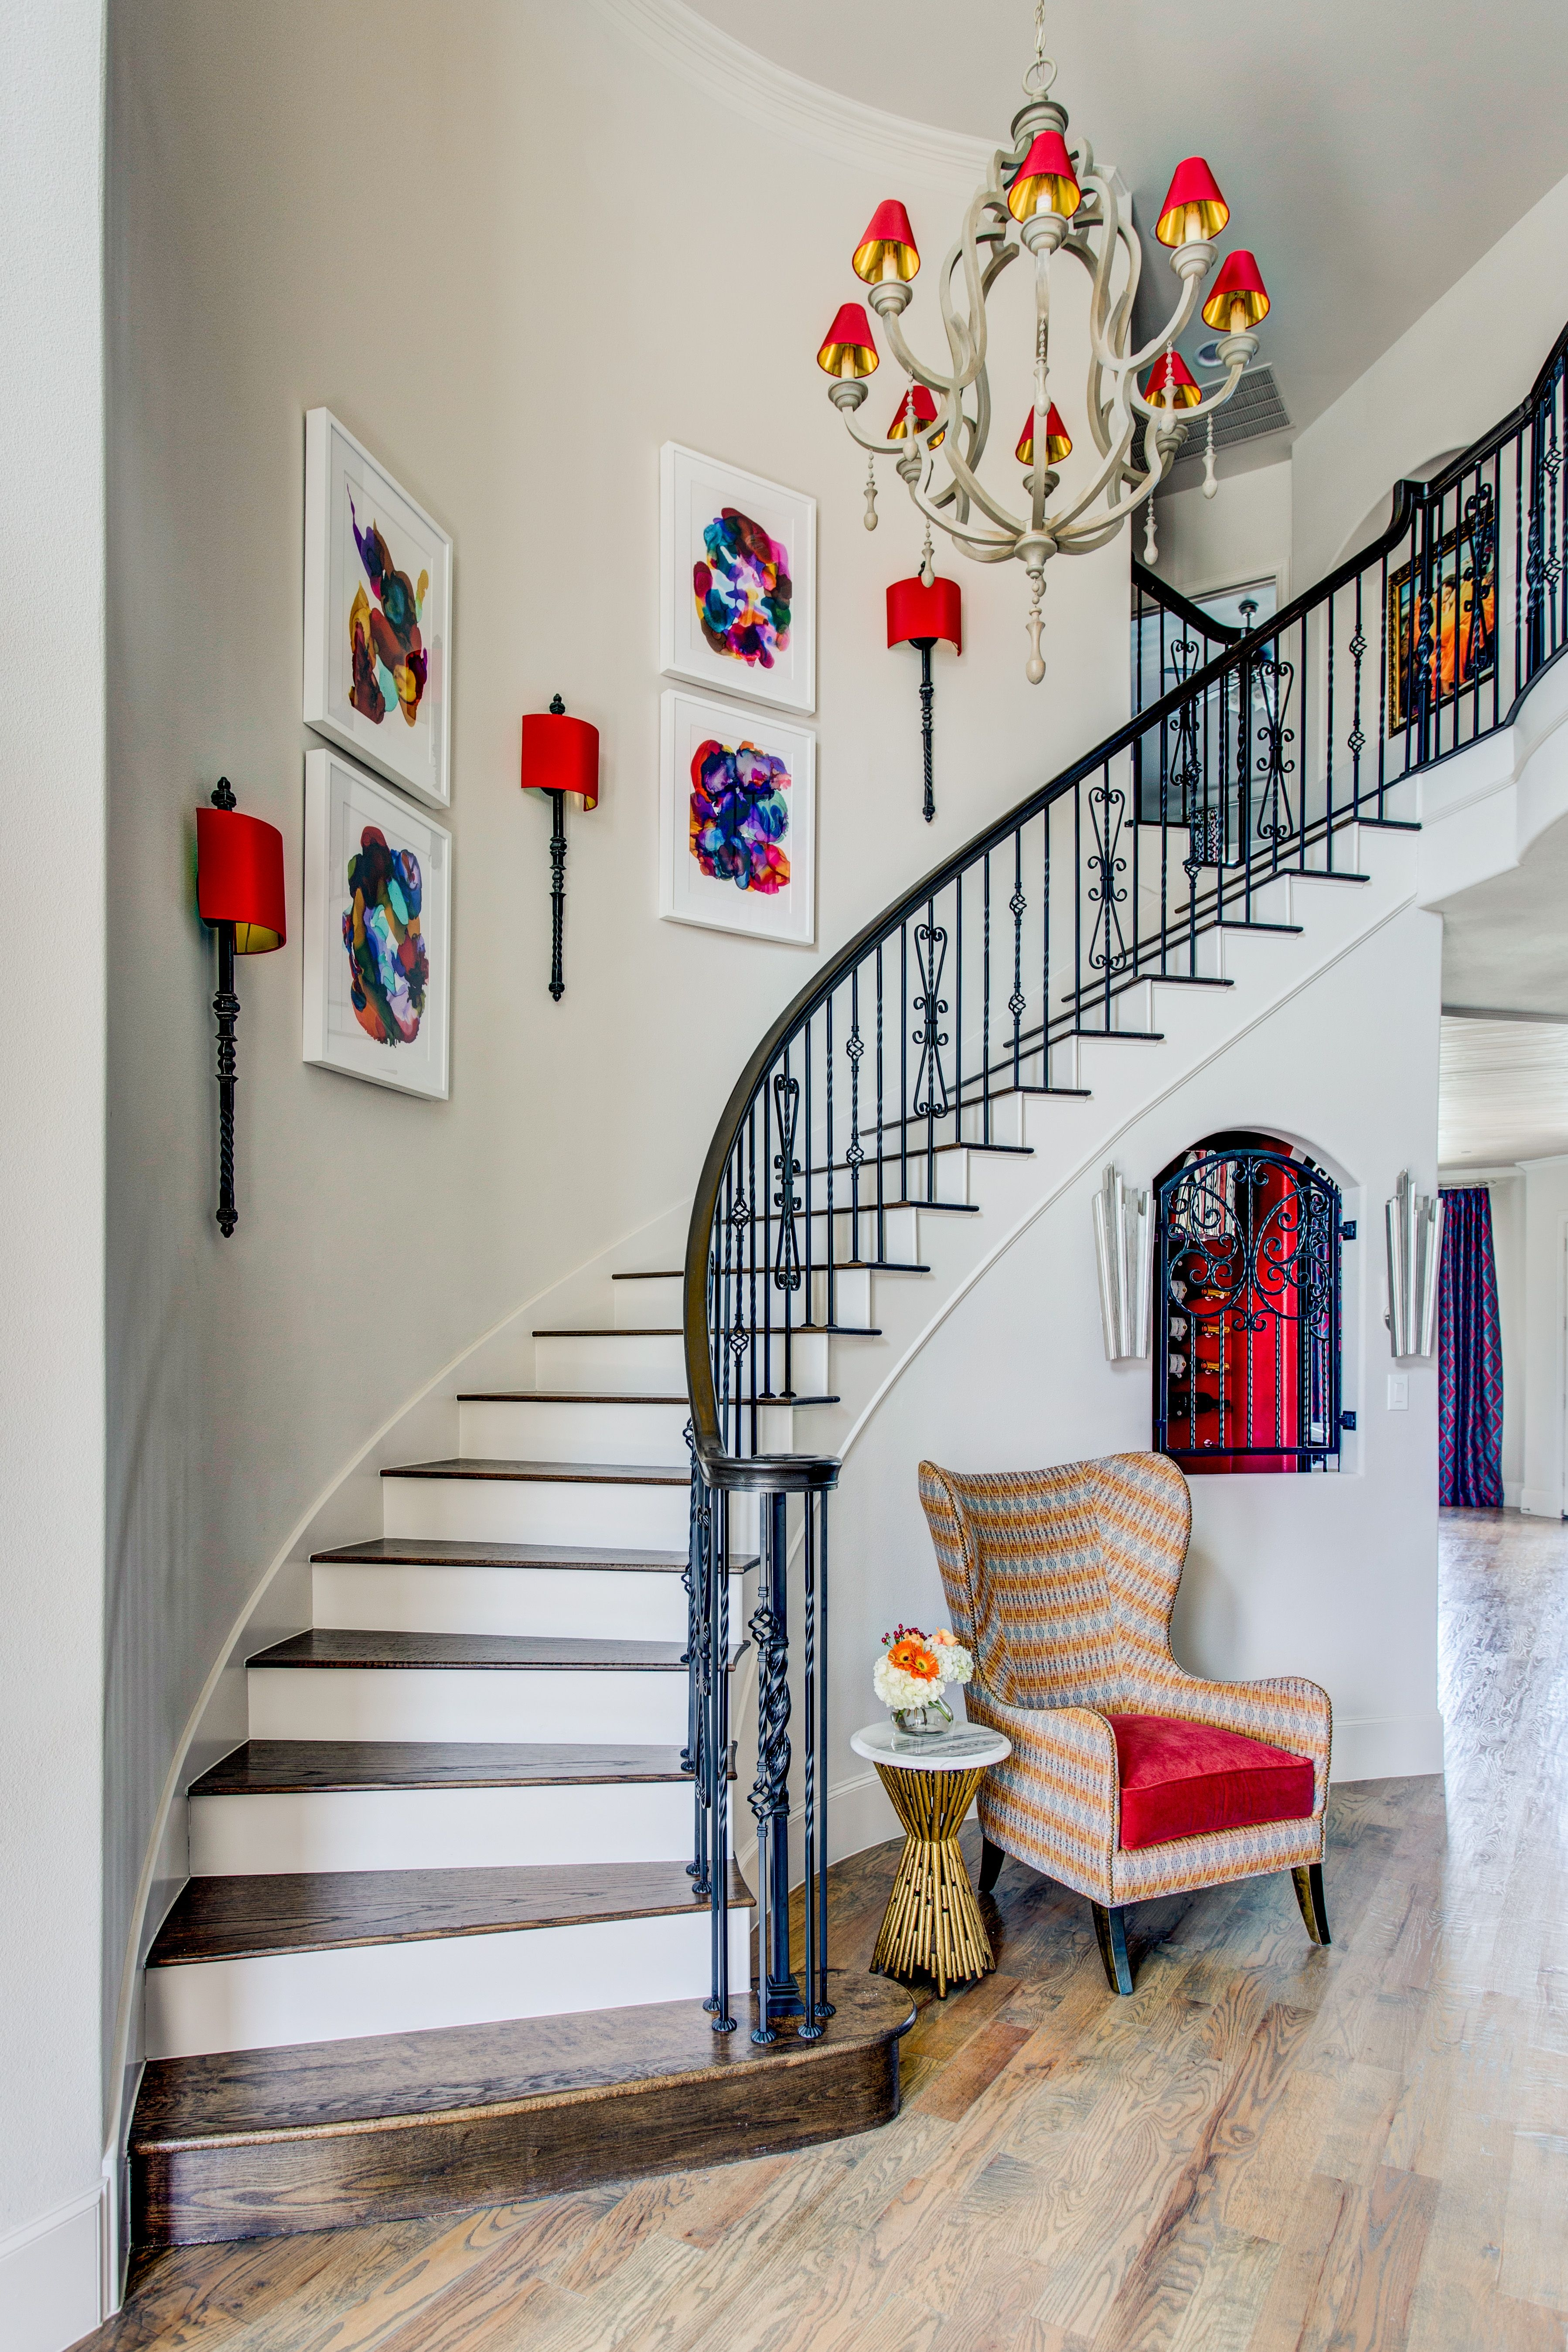 27 Stylish Staircase Decorating Ideas How To Decorate Stairways | Stairs In Middle Of Room Interior Design | 3 Story Staircase | House | Middle Hallway | Private Home | Mixed Interior